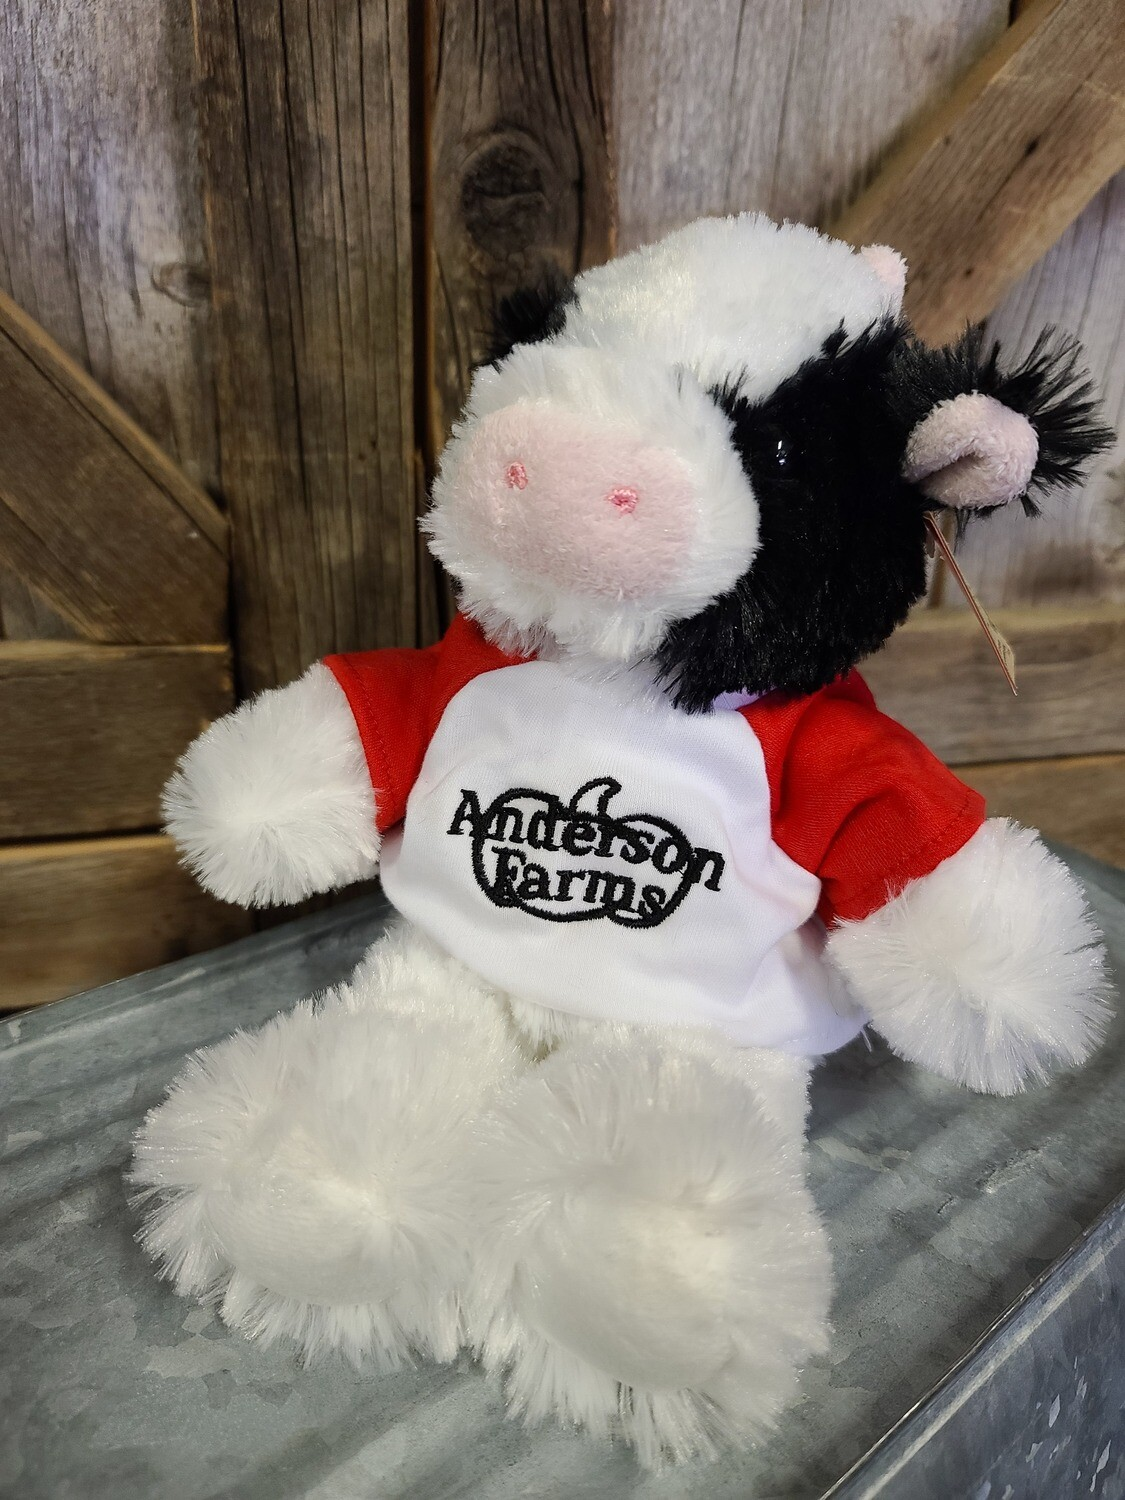 Cow with RED Anderson Farms Shirt